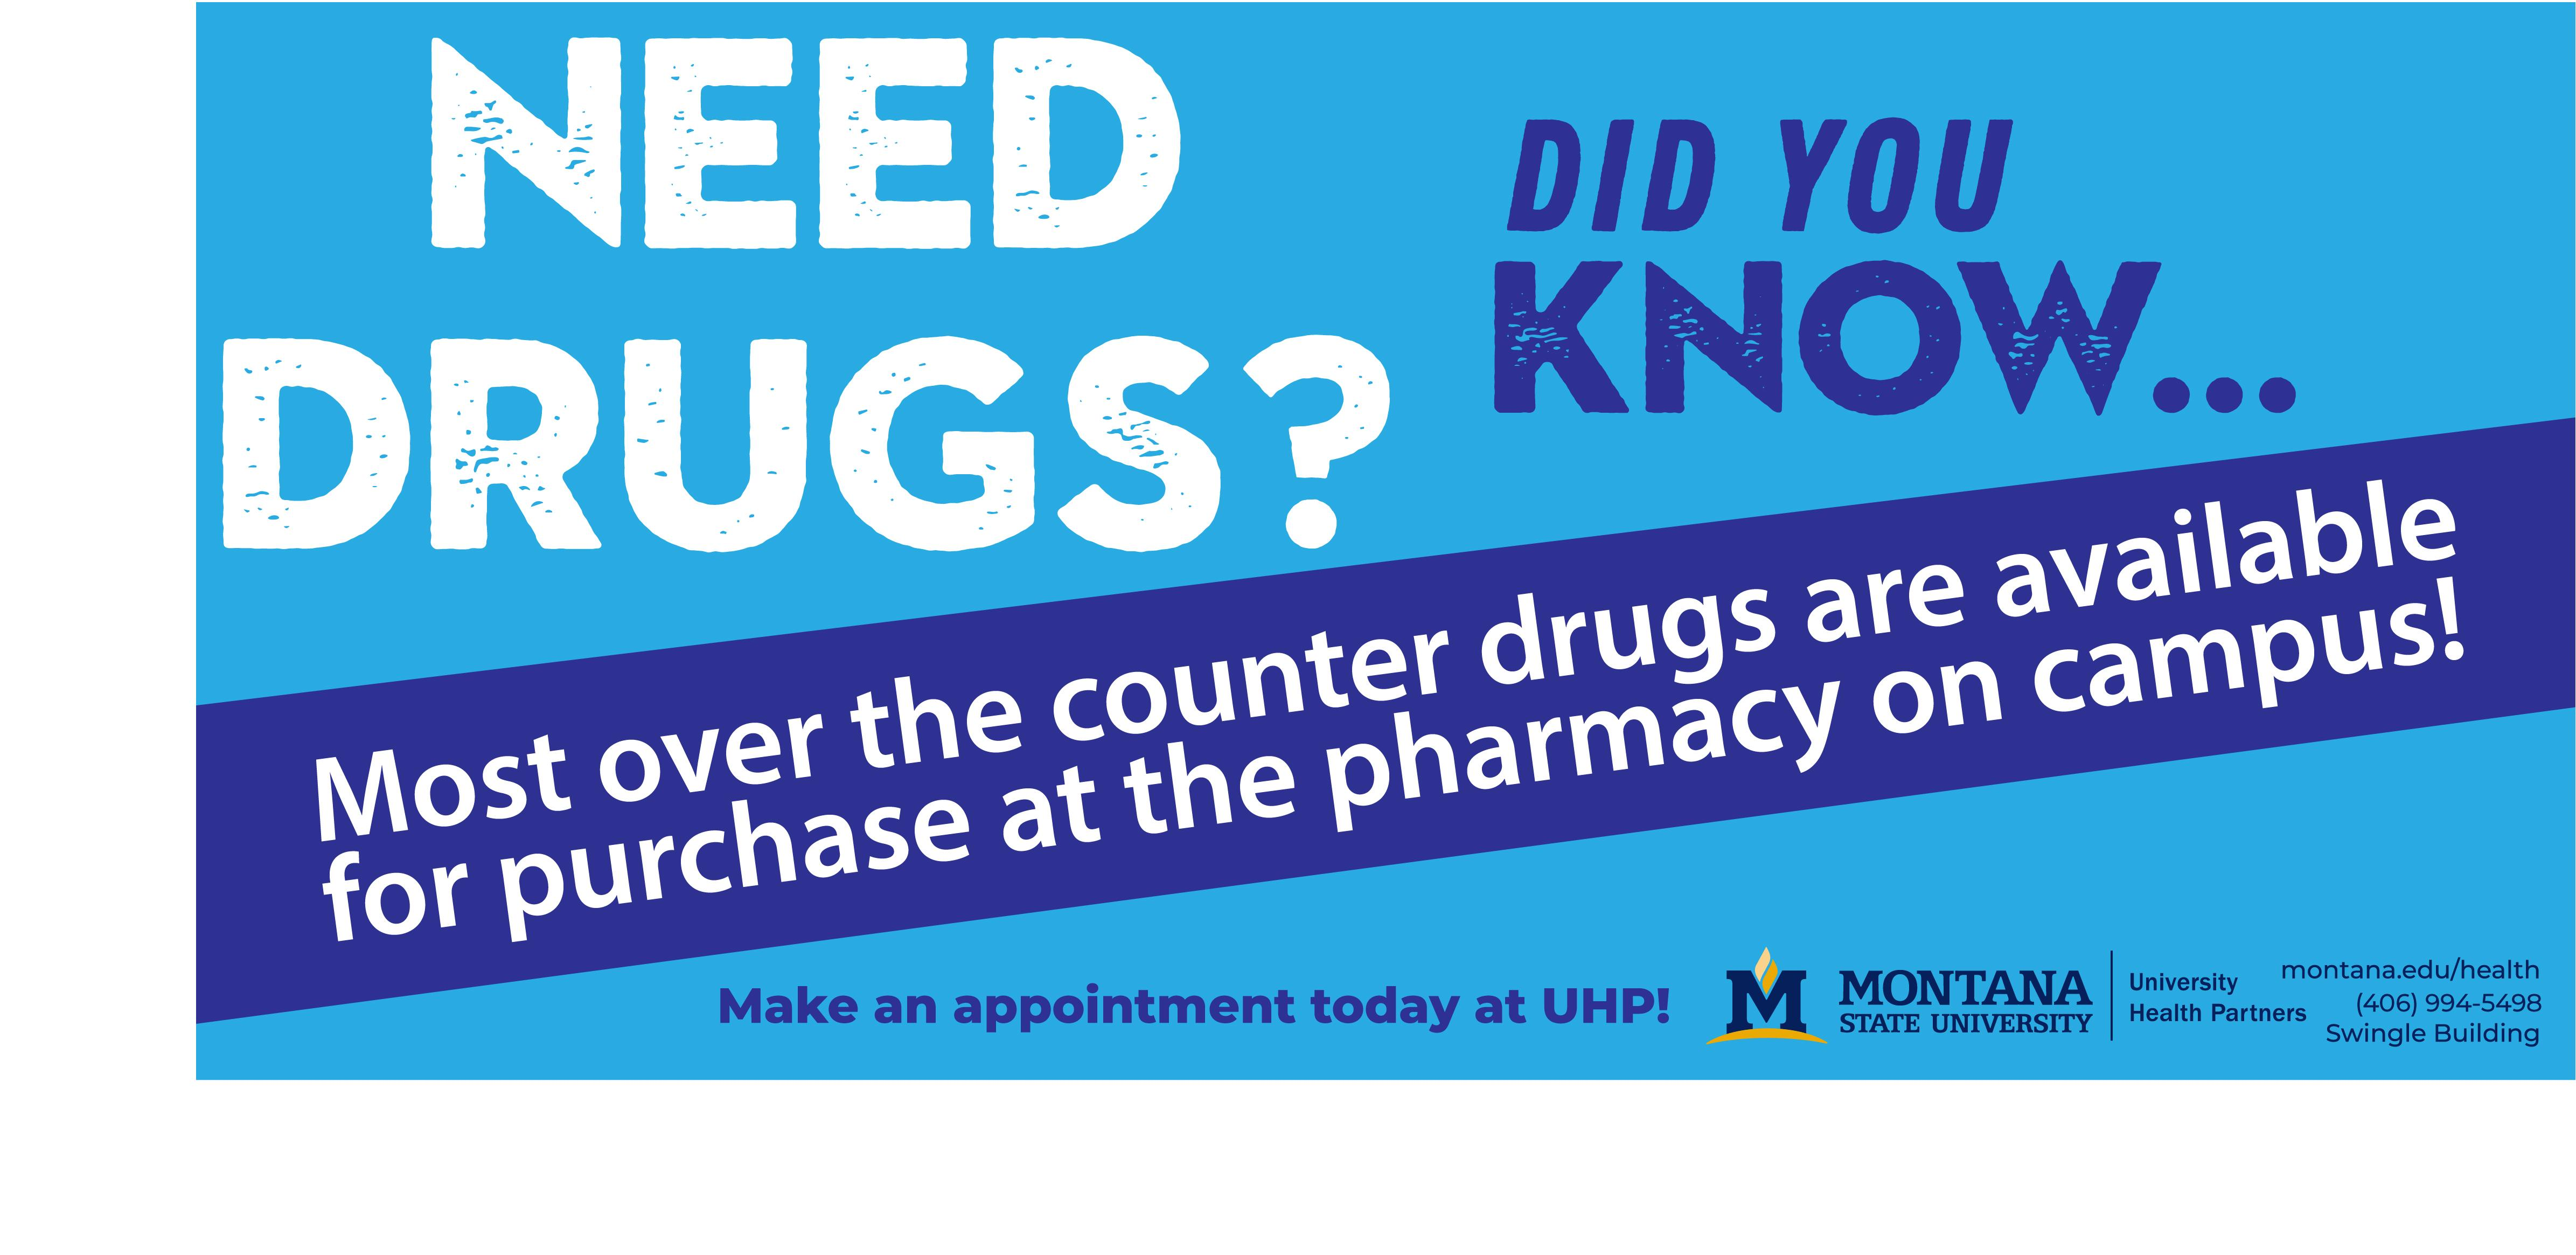 Did you know most over the counter drugs. are available for purchase at the pharmacy on campus?